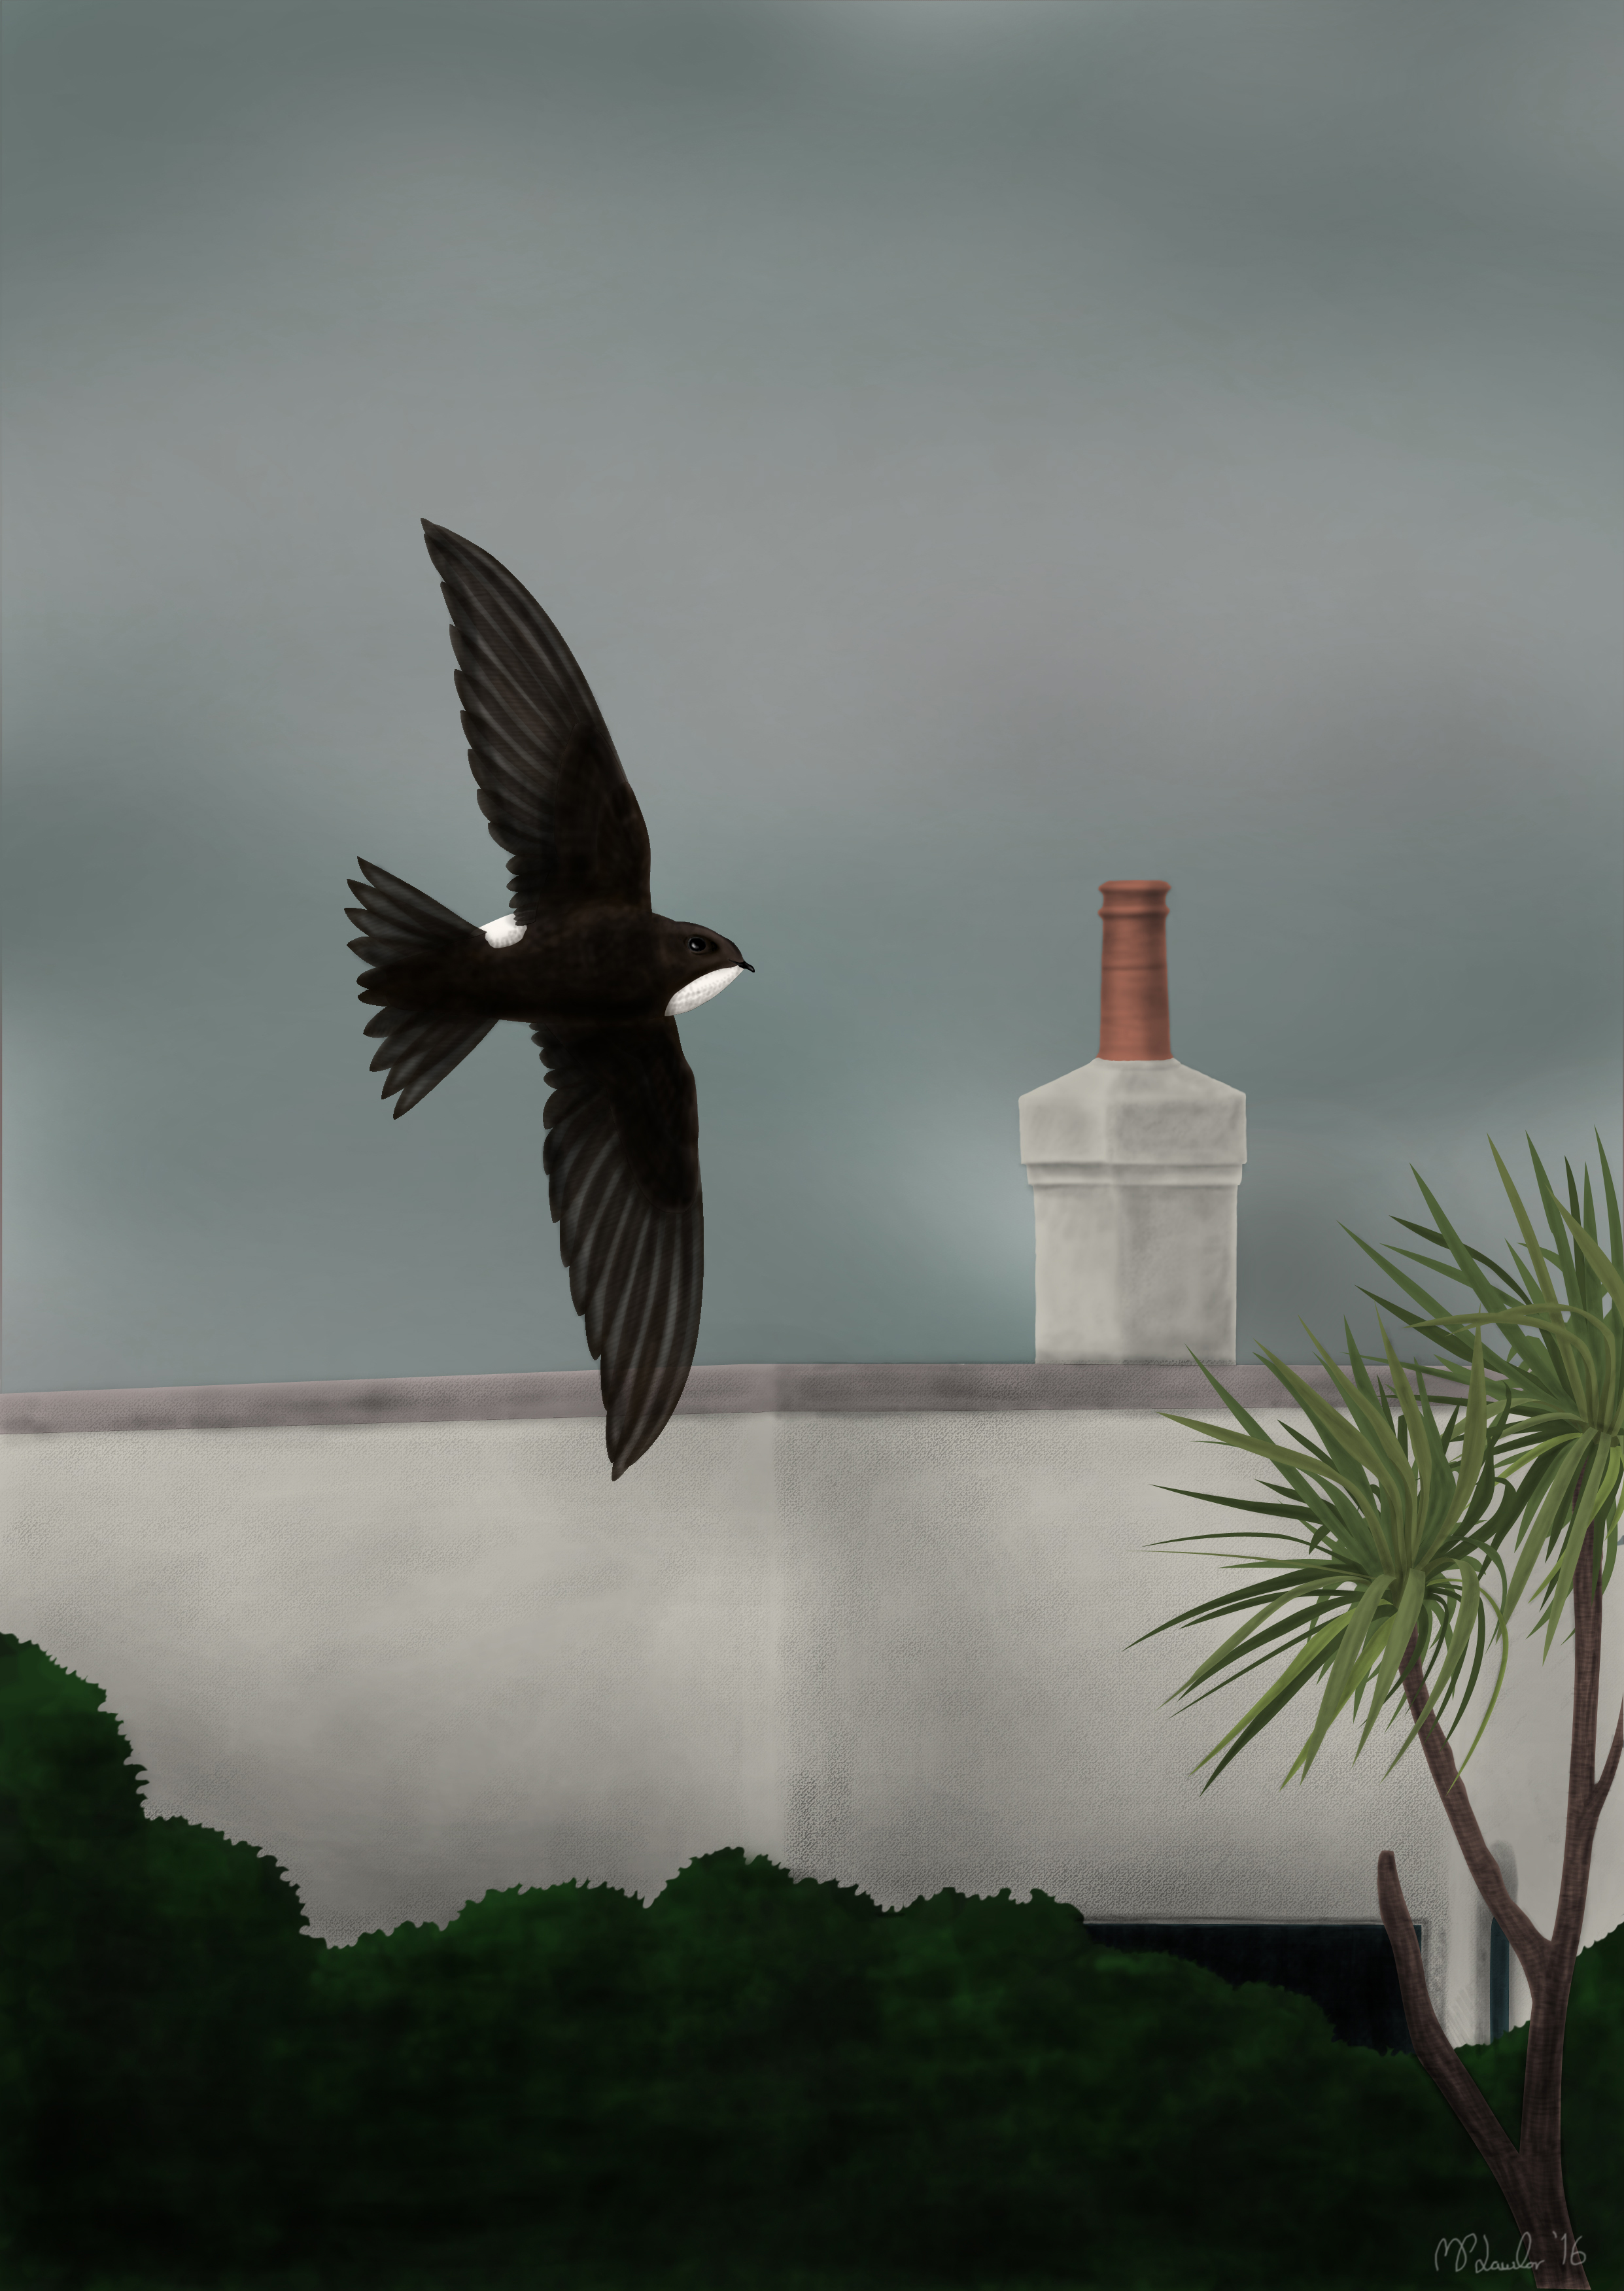 drawing of last year's Little Swift for the cover of the 2015 rarities report which is available to download from the rarity report page, accessed via the tab at the top of the page.